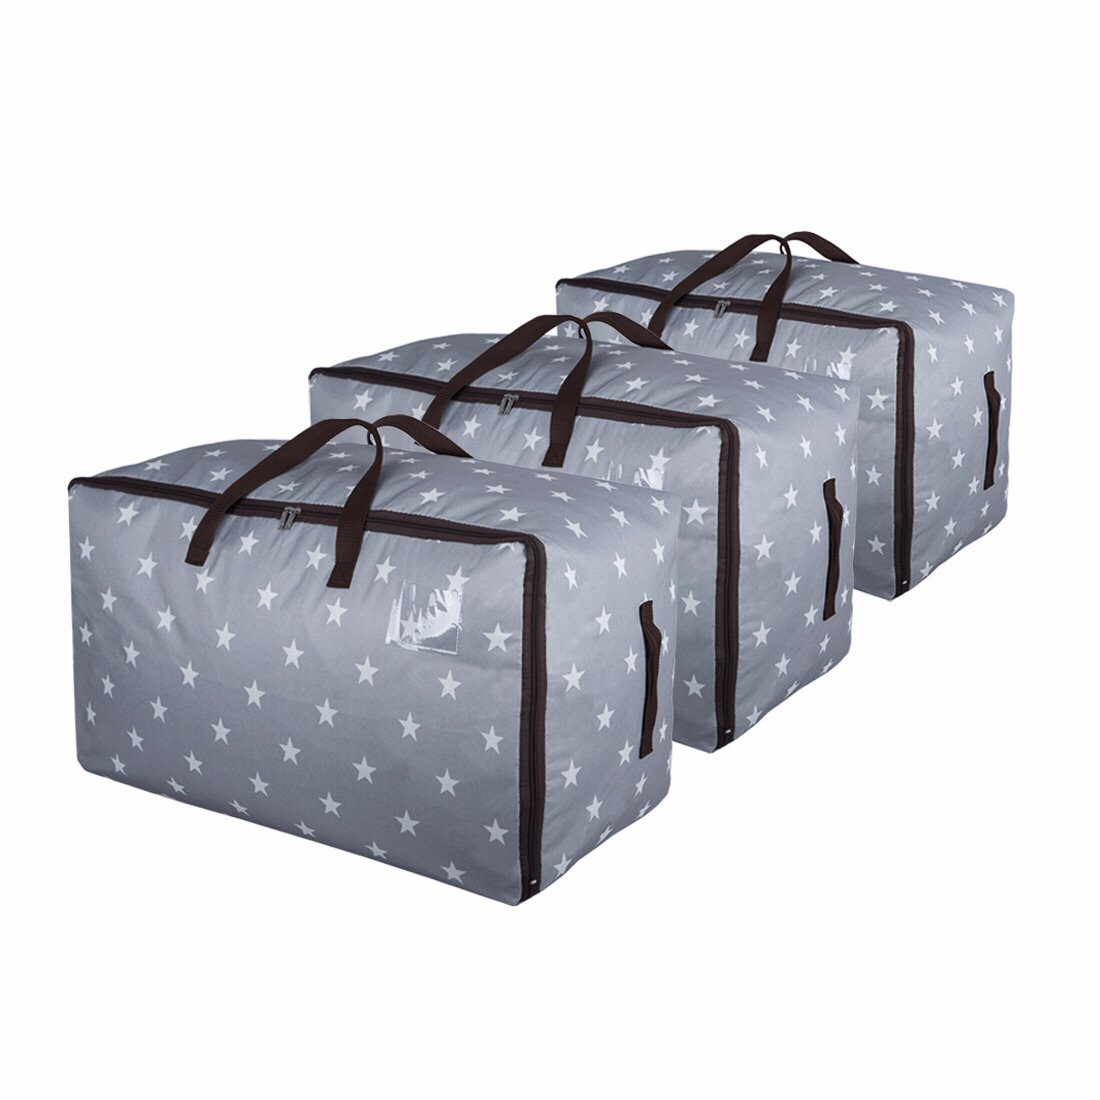 DOKEHOM 3-Pieces 100L Large Storage Bag, Fabric Clothes Bag, Thick Ultra Size Under Bed Storage, Moisture proof (Grey, Set of 3) by DOKEHOM